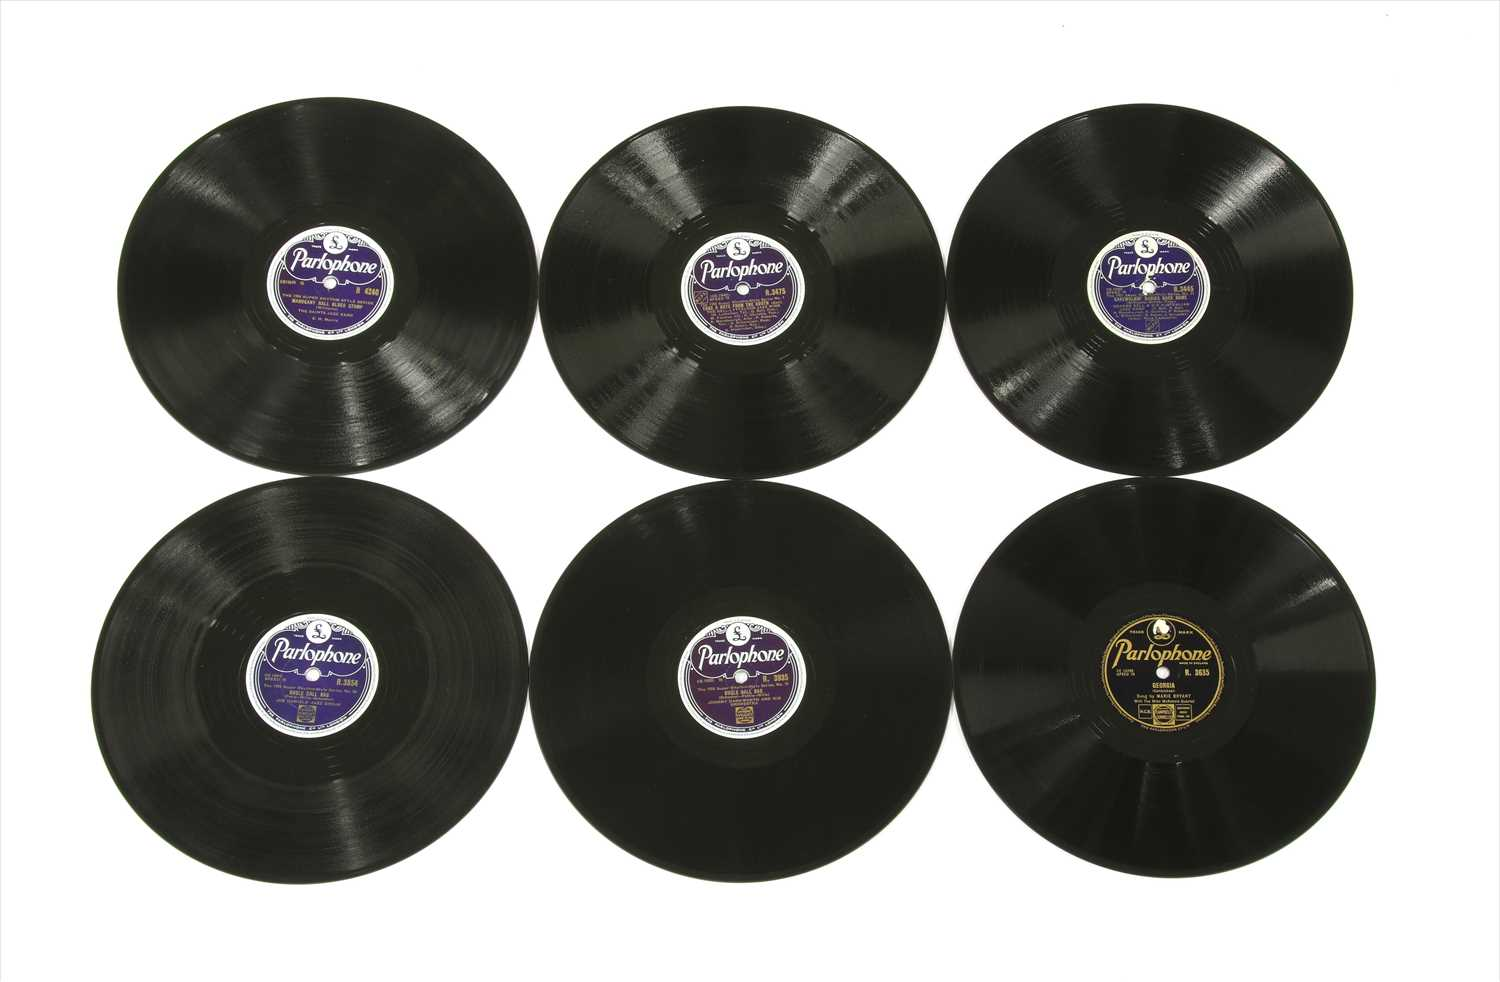 Lot 17 - Parlophone (10in) Shellac